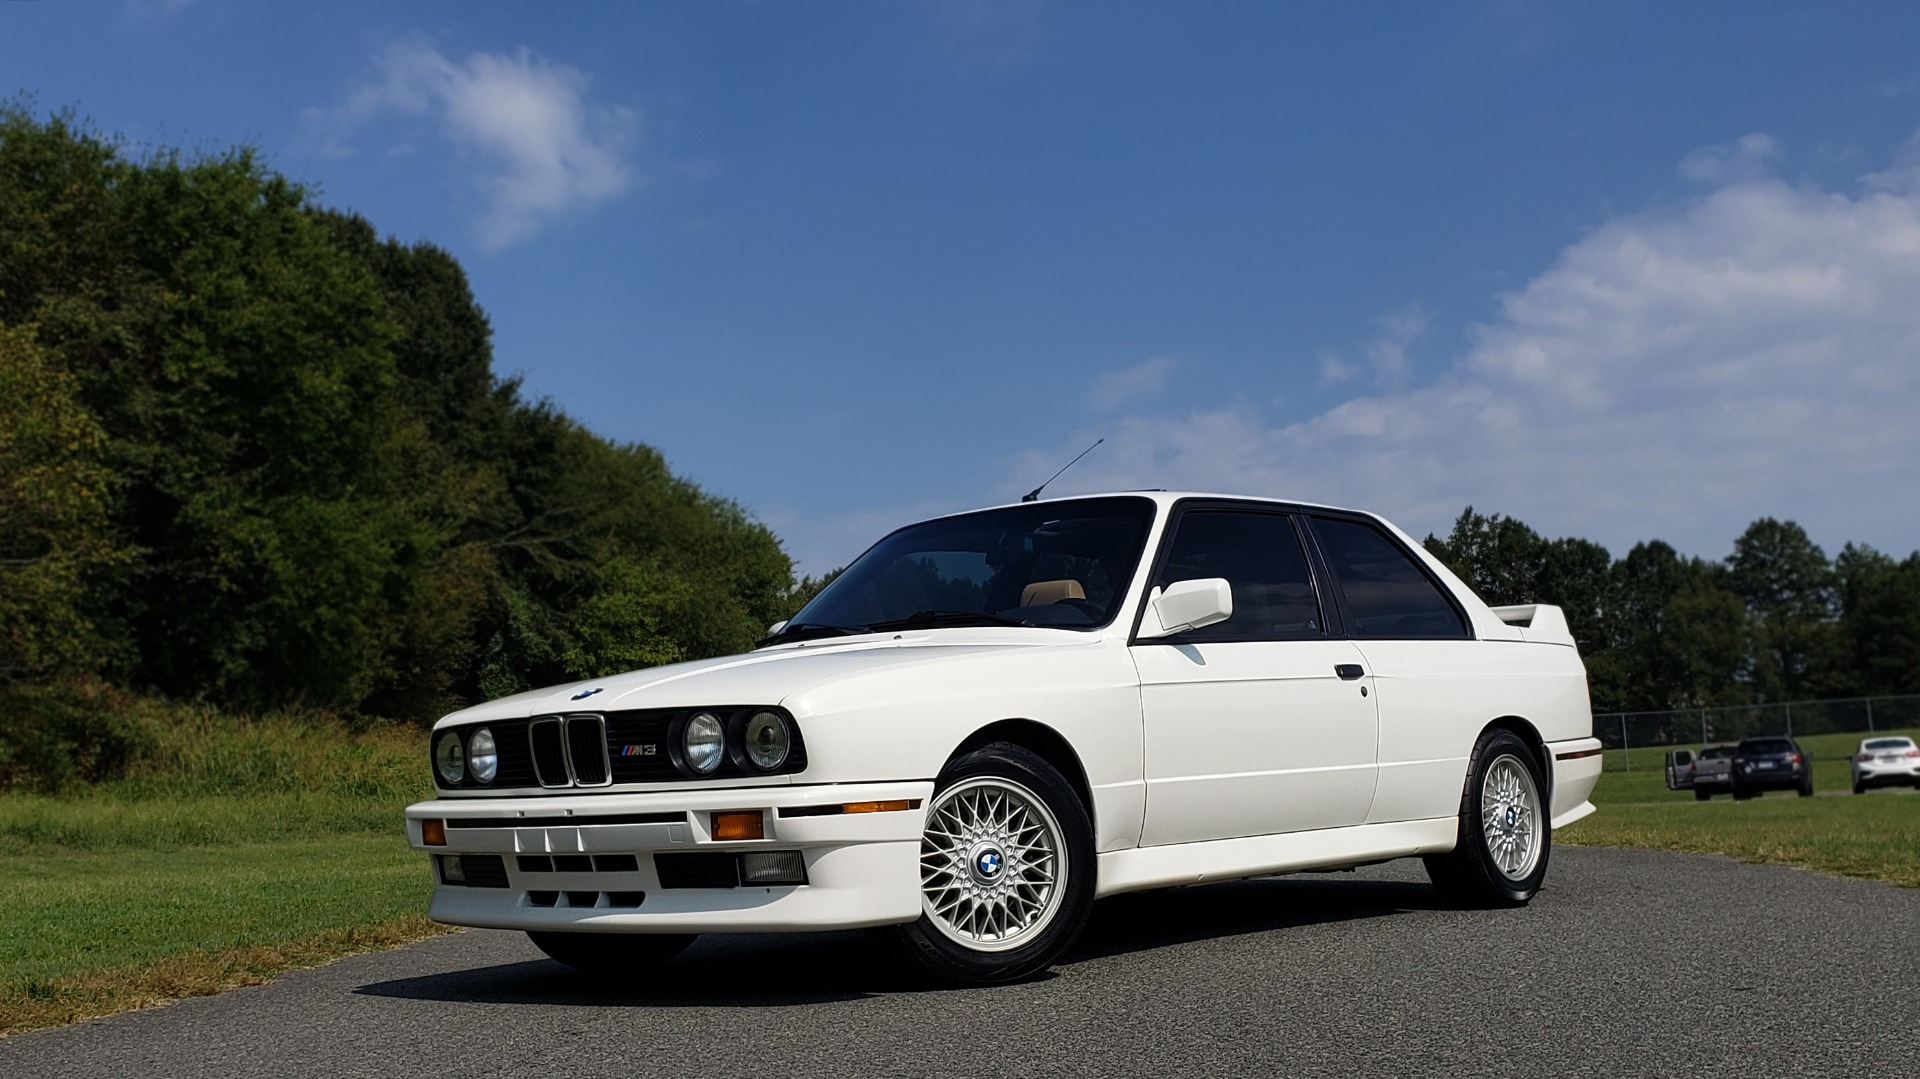 Used 1989 BMW M3 COUPE 2DR / 5-SPEED MAN / LOW MILES / SUPER CLEAN for sale Sold at Formula Imports in Charlotte NC 28227 24